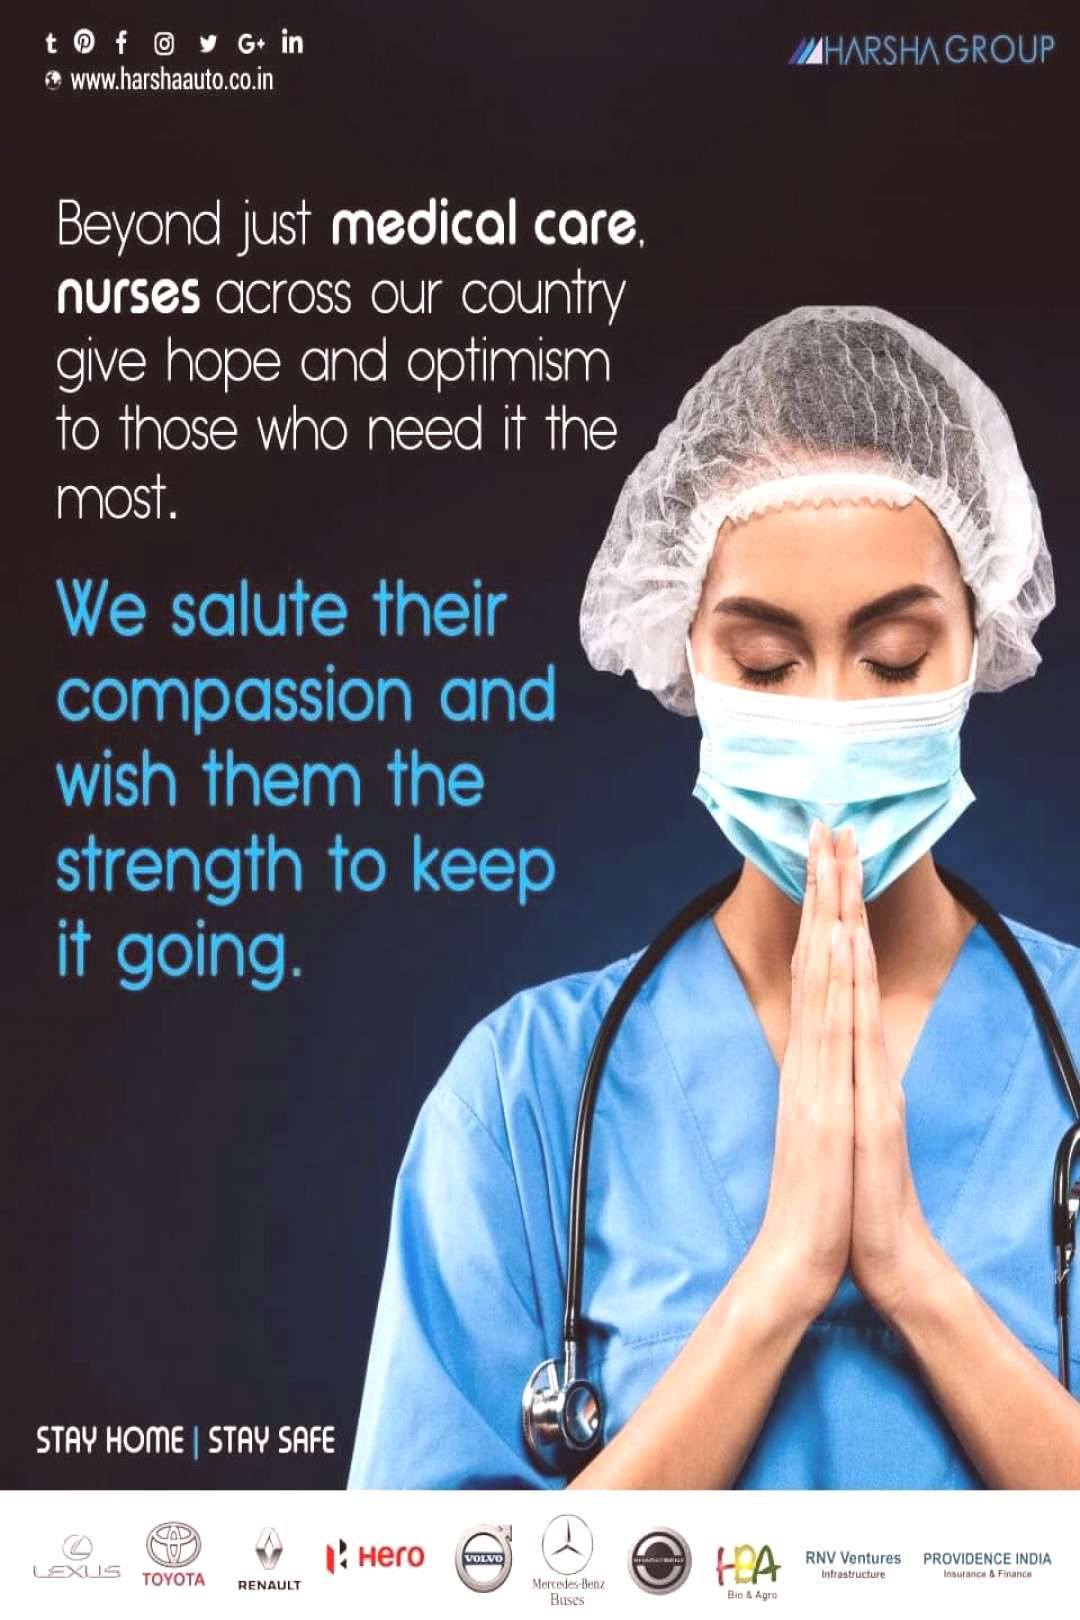 It's more than medical care. It is about compassion and love for others. Our nurses are our careg